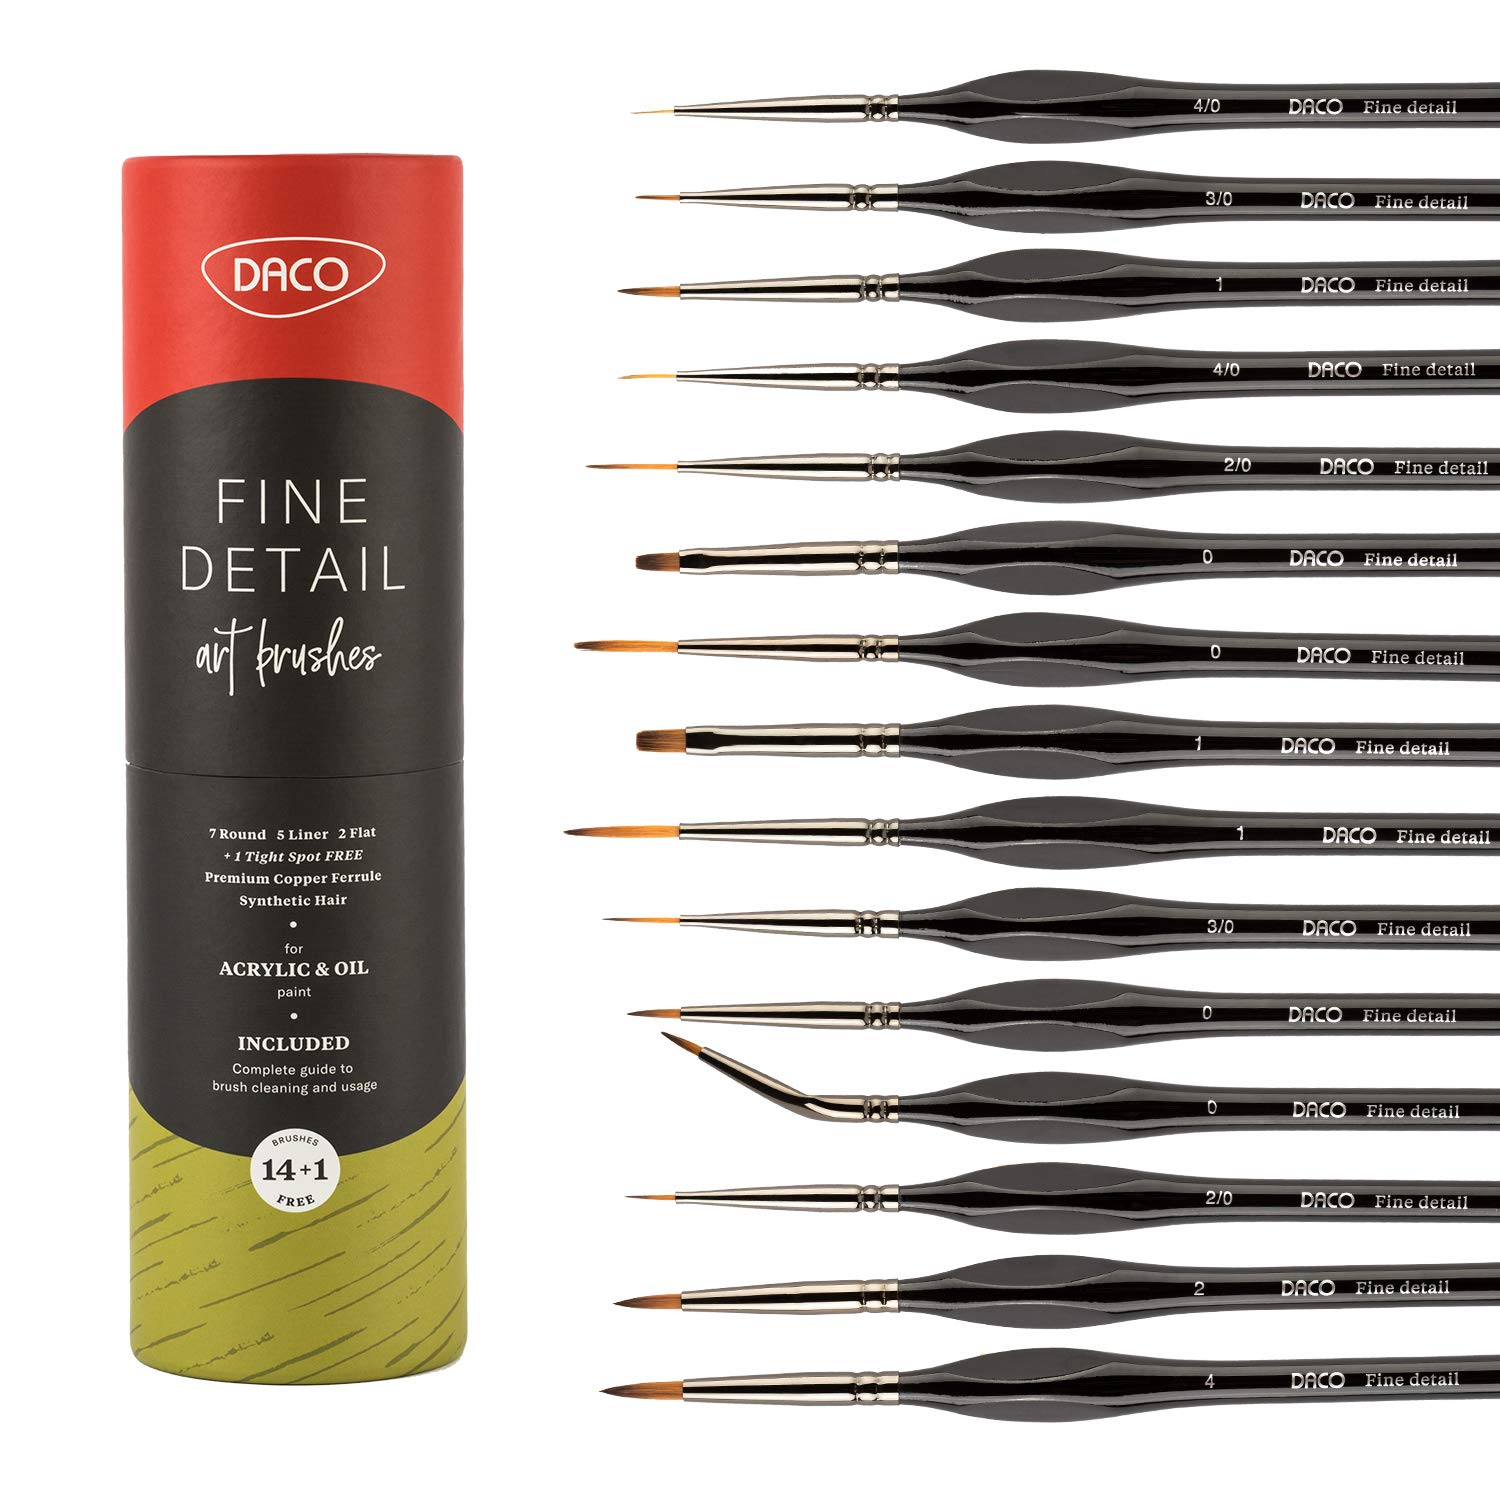 DACO Detail Paint Brush Set | 14pcs +1 Fine Miniature Paint Brushes Kit with Ergonomic Handle, Holder and Travel Bag (for Acrylic, Oil, Watercolor, Art, Scale Model, Face, Paint by Numbers for Adults)